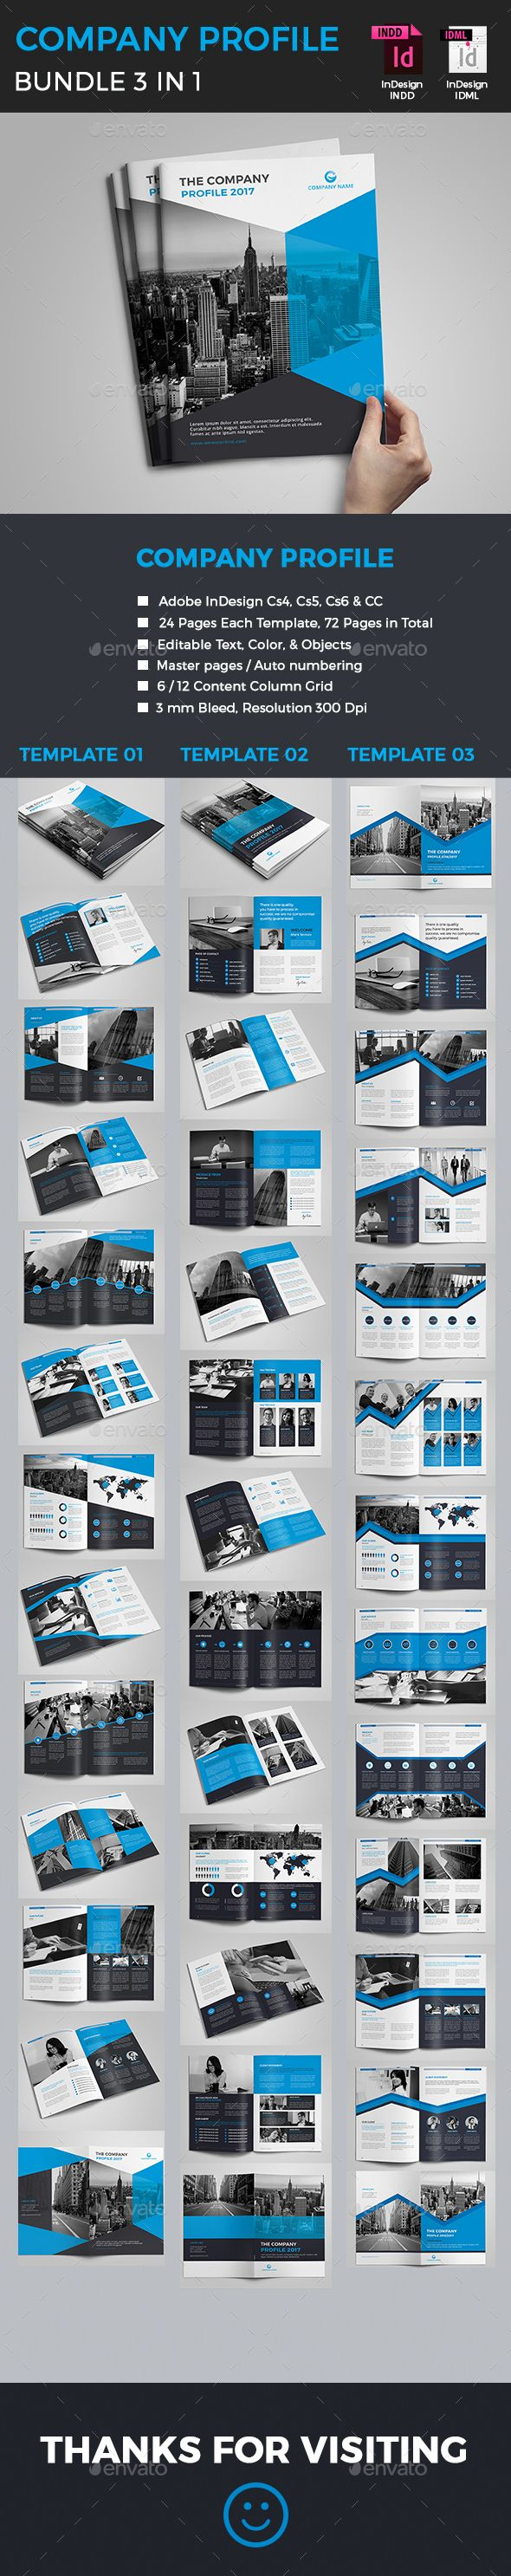 Example Of Company Profile Template Best Company Profile Bundle  Pinterest  Brochure Examples Brochures .